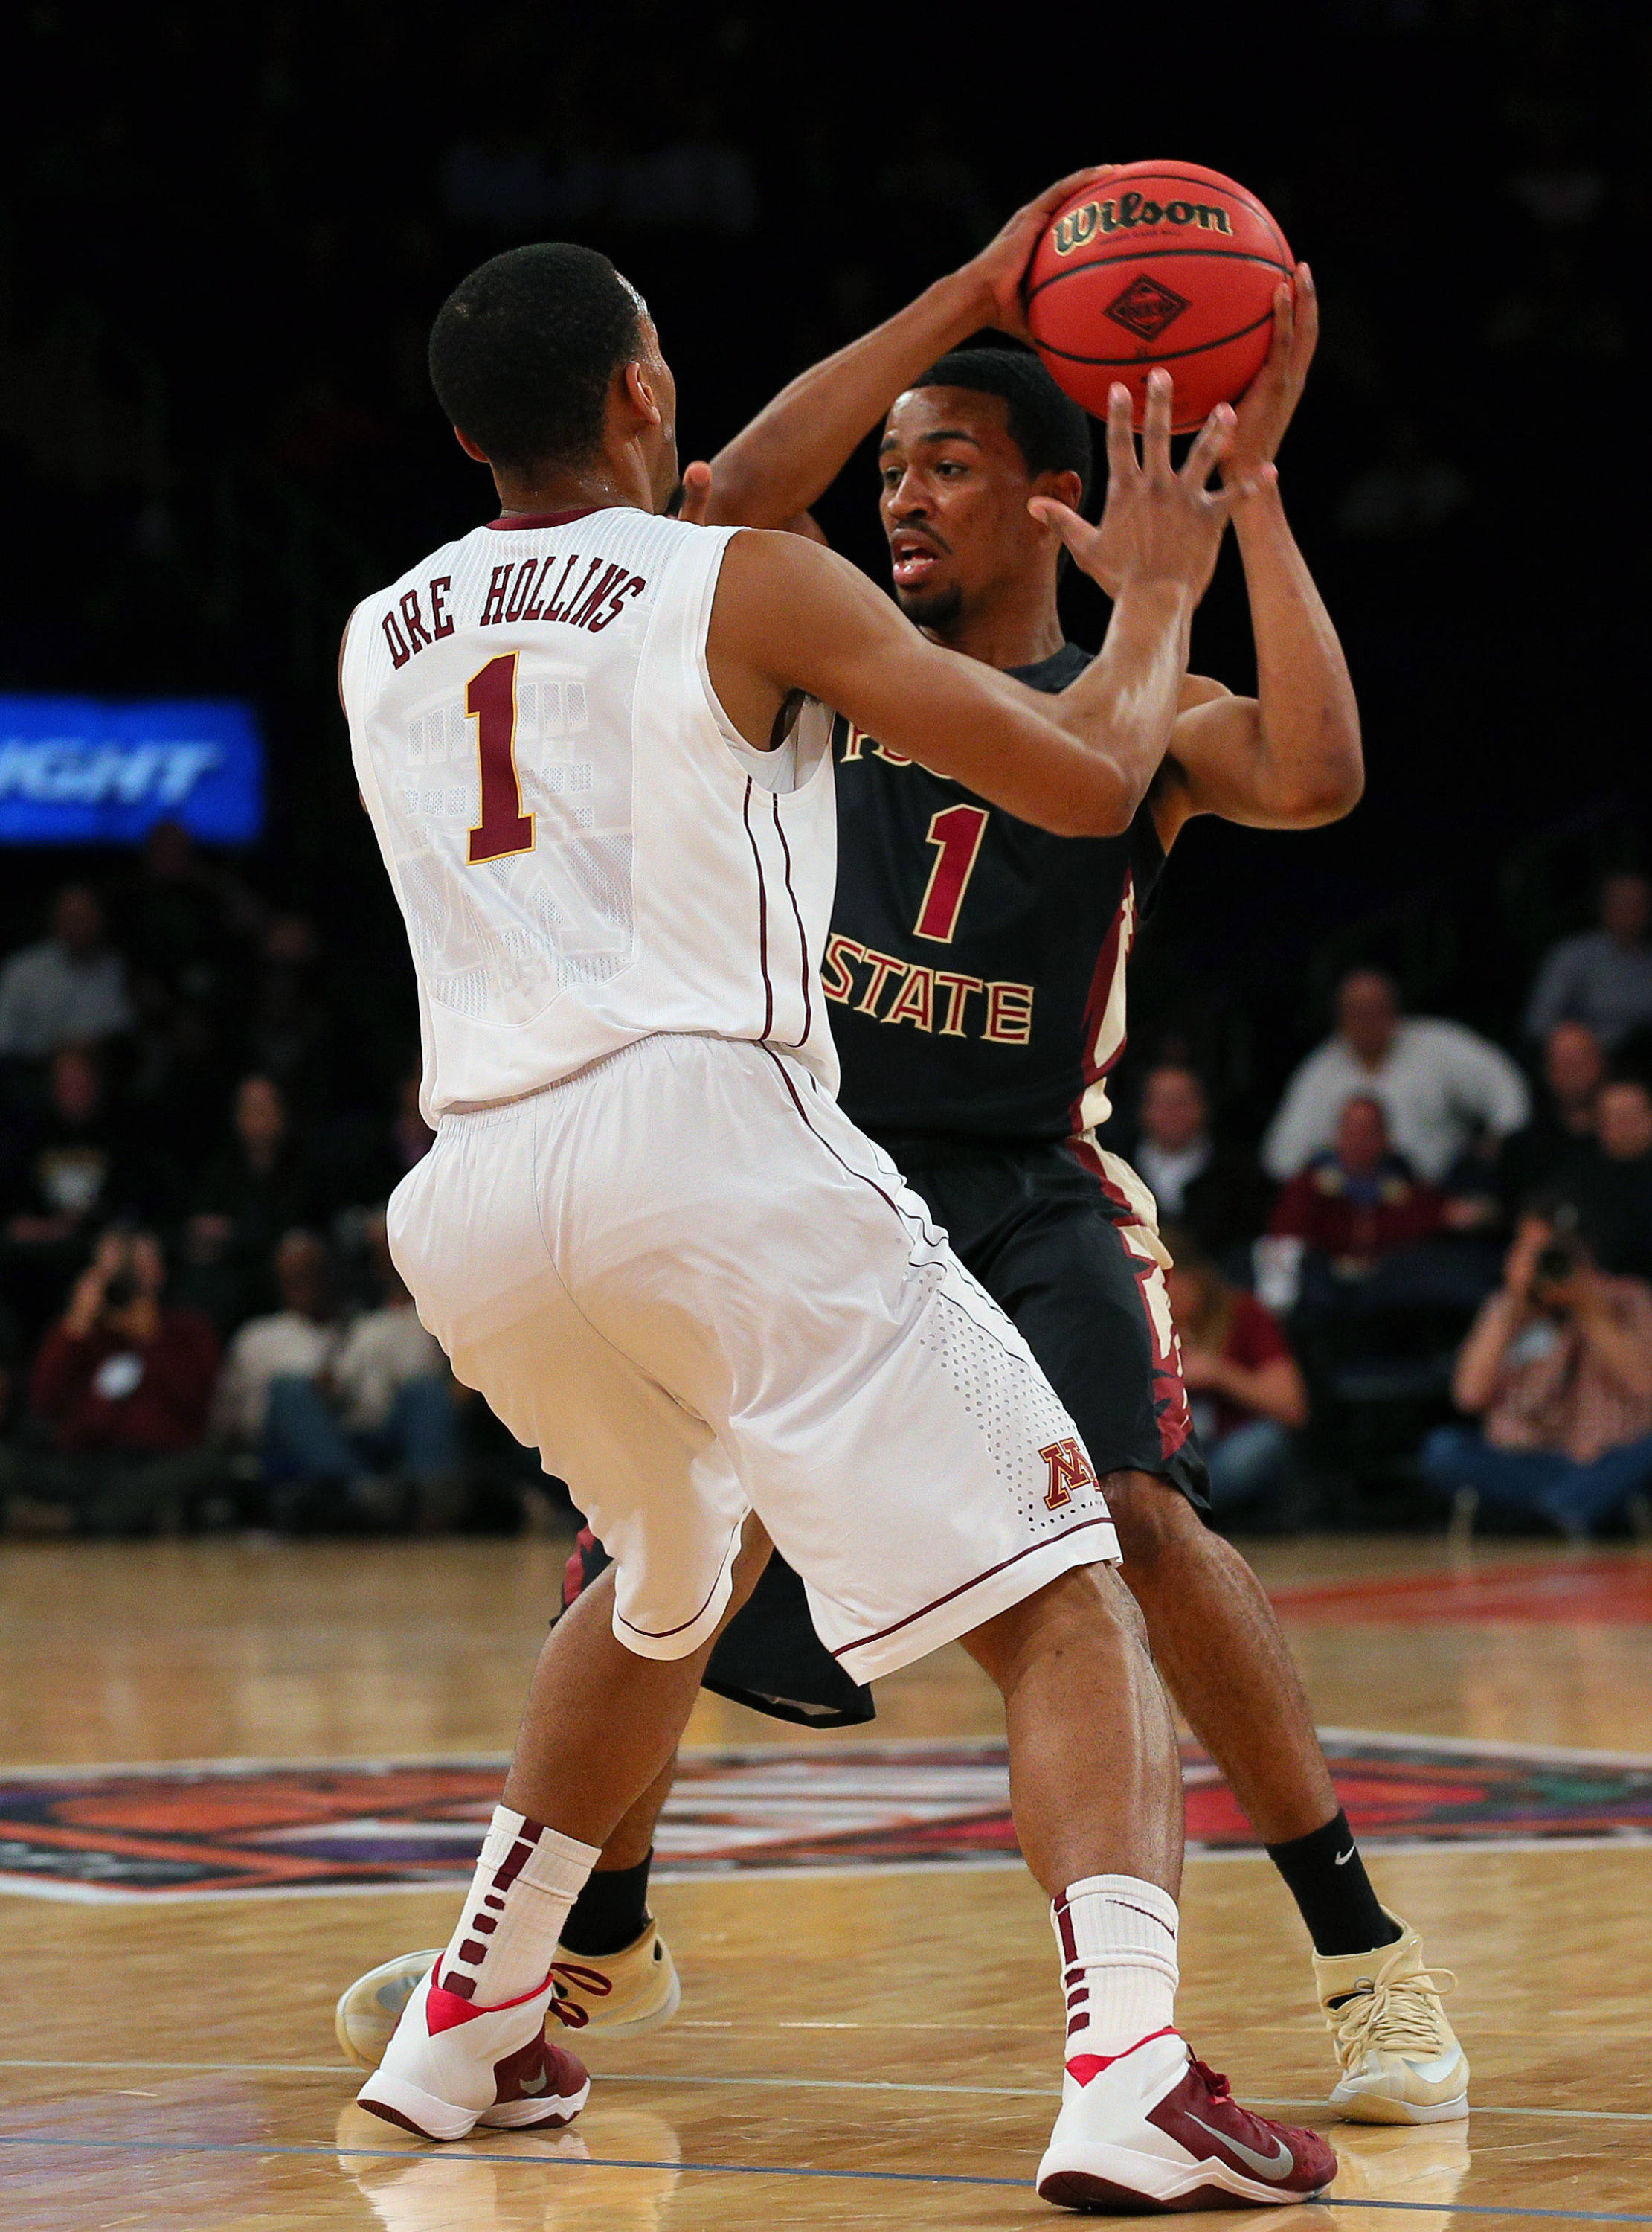 Apr 1, 2014; New York, NY, USA; Florida State Seminoles guard Devon Bookert (1) is defended by Minnesota Golden Gophers guard Andre Hollins (1) during the first half at Madison Square Garden. Mandatory Credit: Adam Hunger-USA TODAY Sports